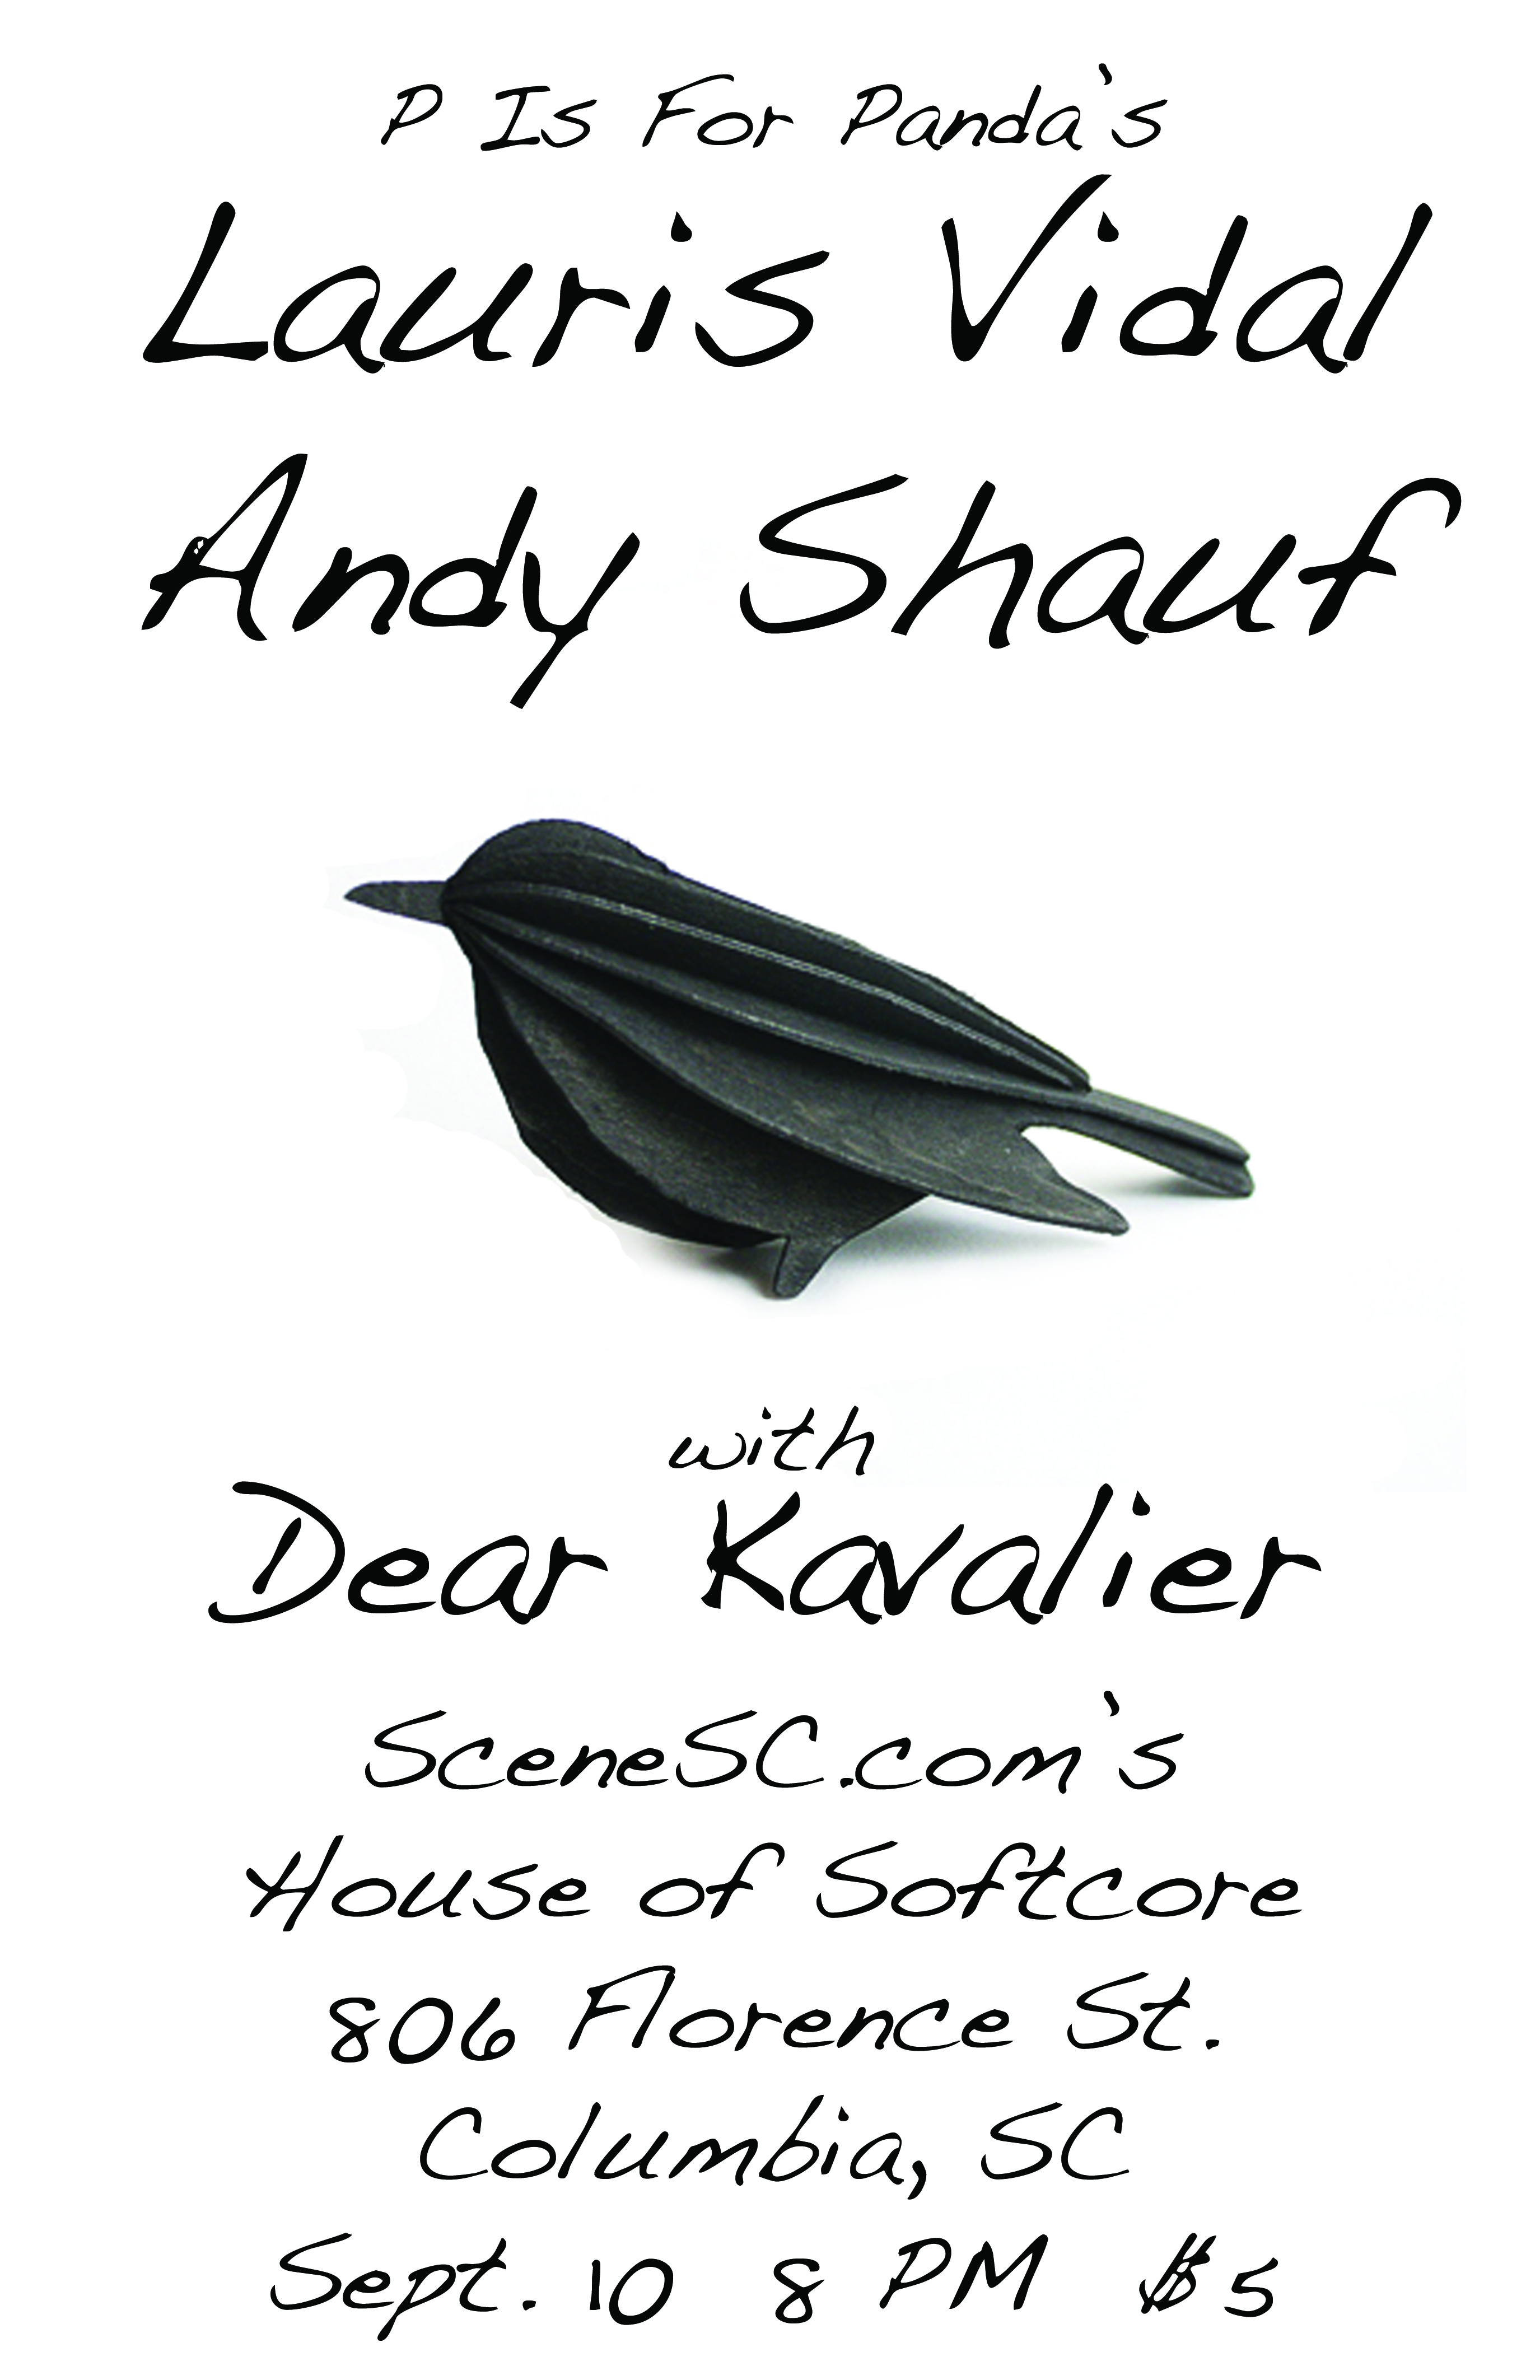 Sept 10: Lauris Vidal, Andy Shauf at House Of Softcore